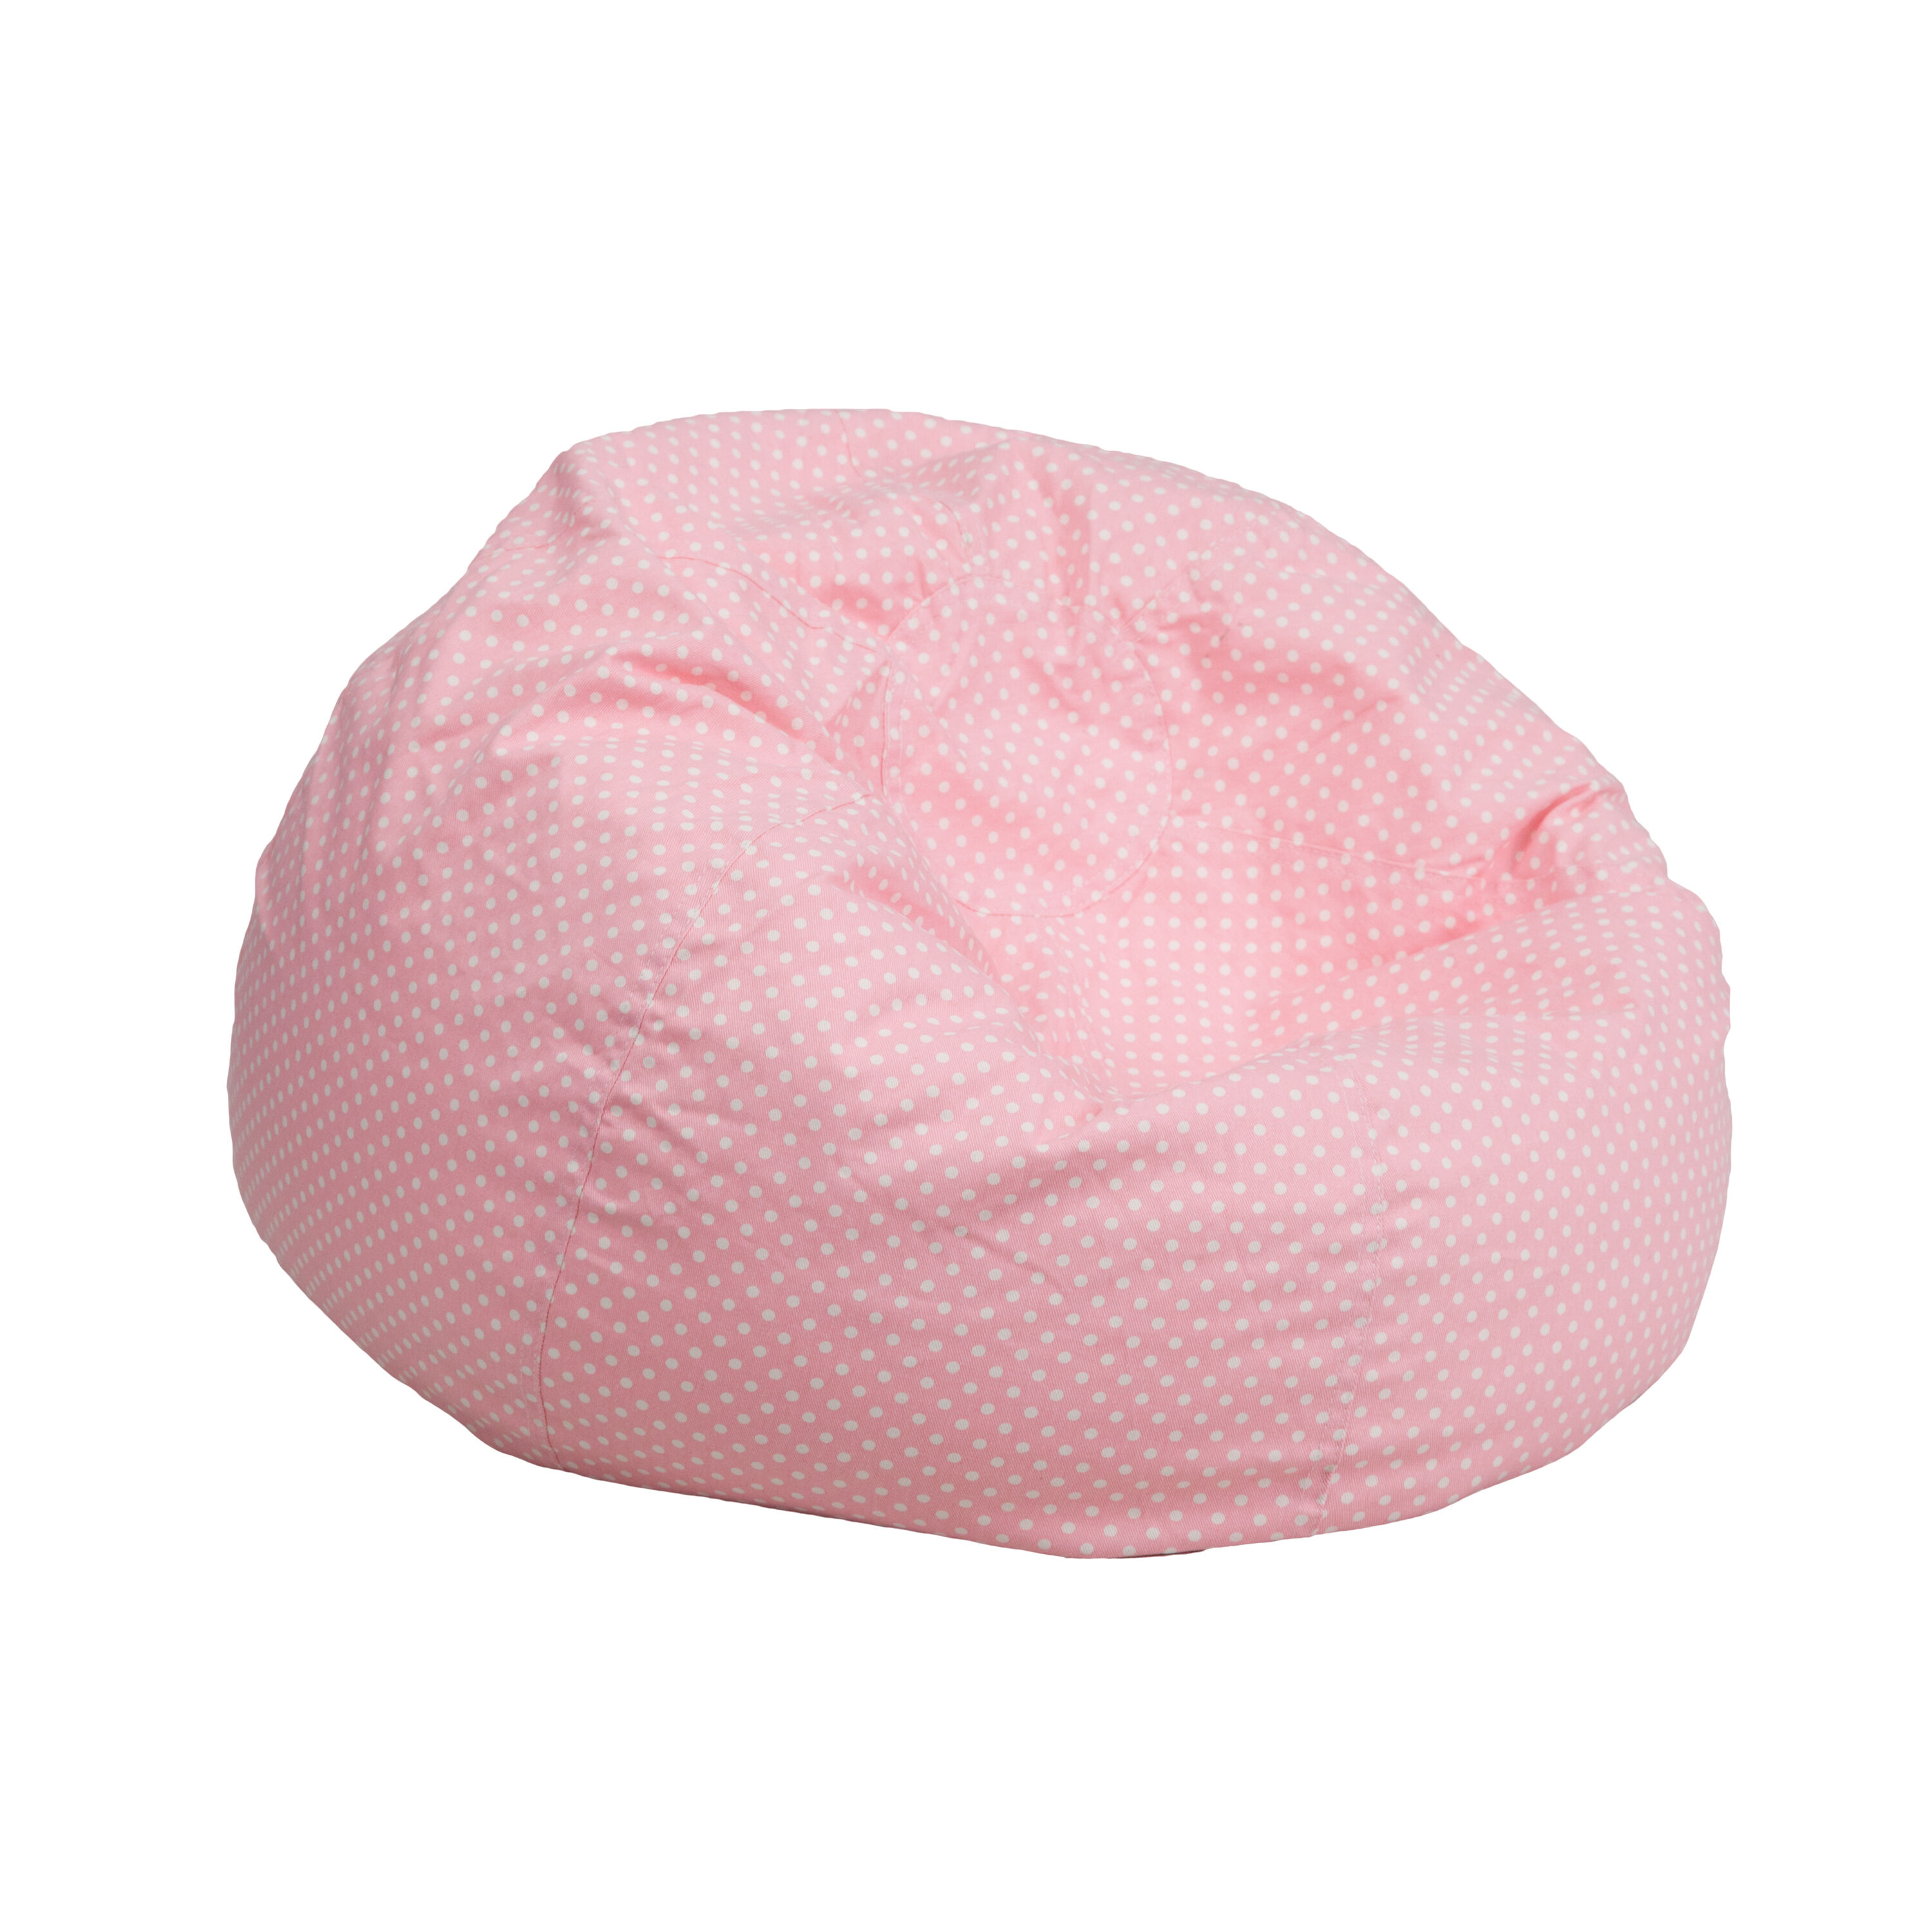 ... Our Small Light Pink Dot Kids Bean Bag Chair Is On Sale Now.